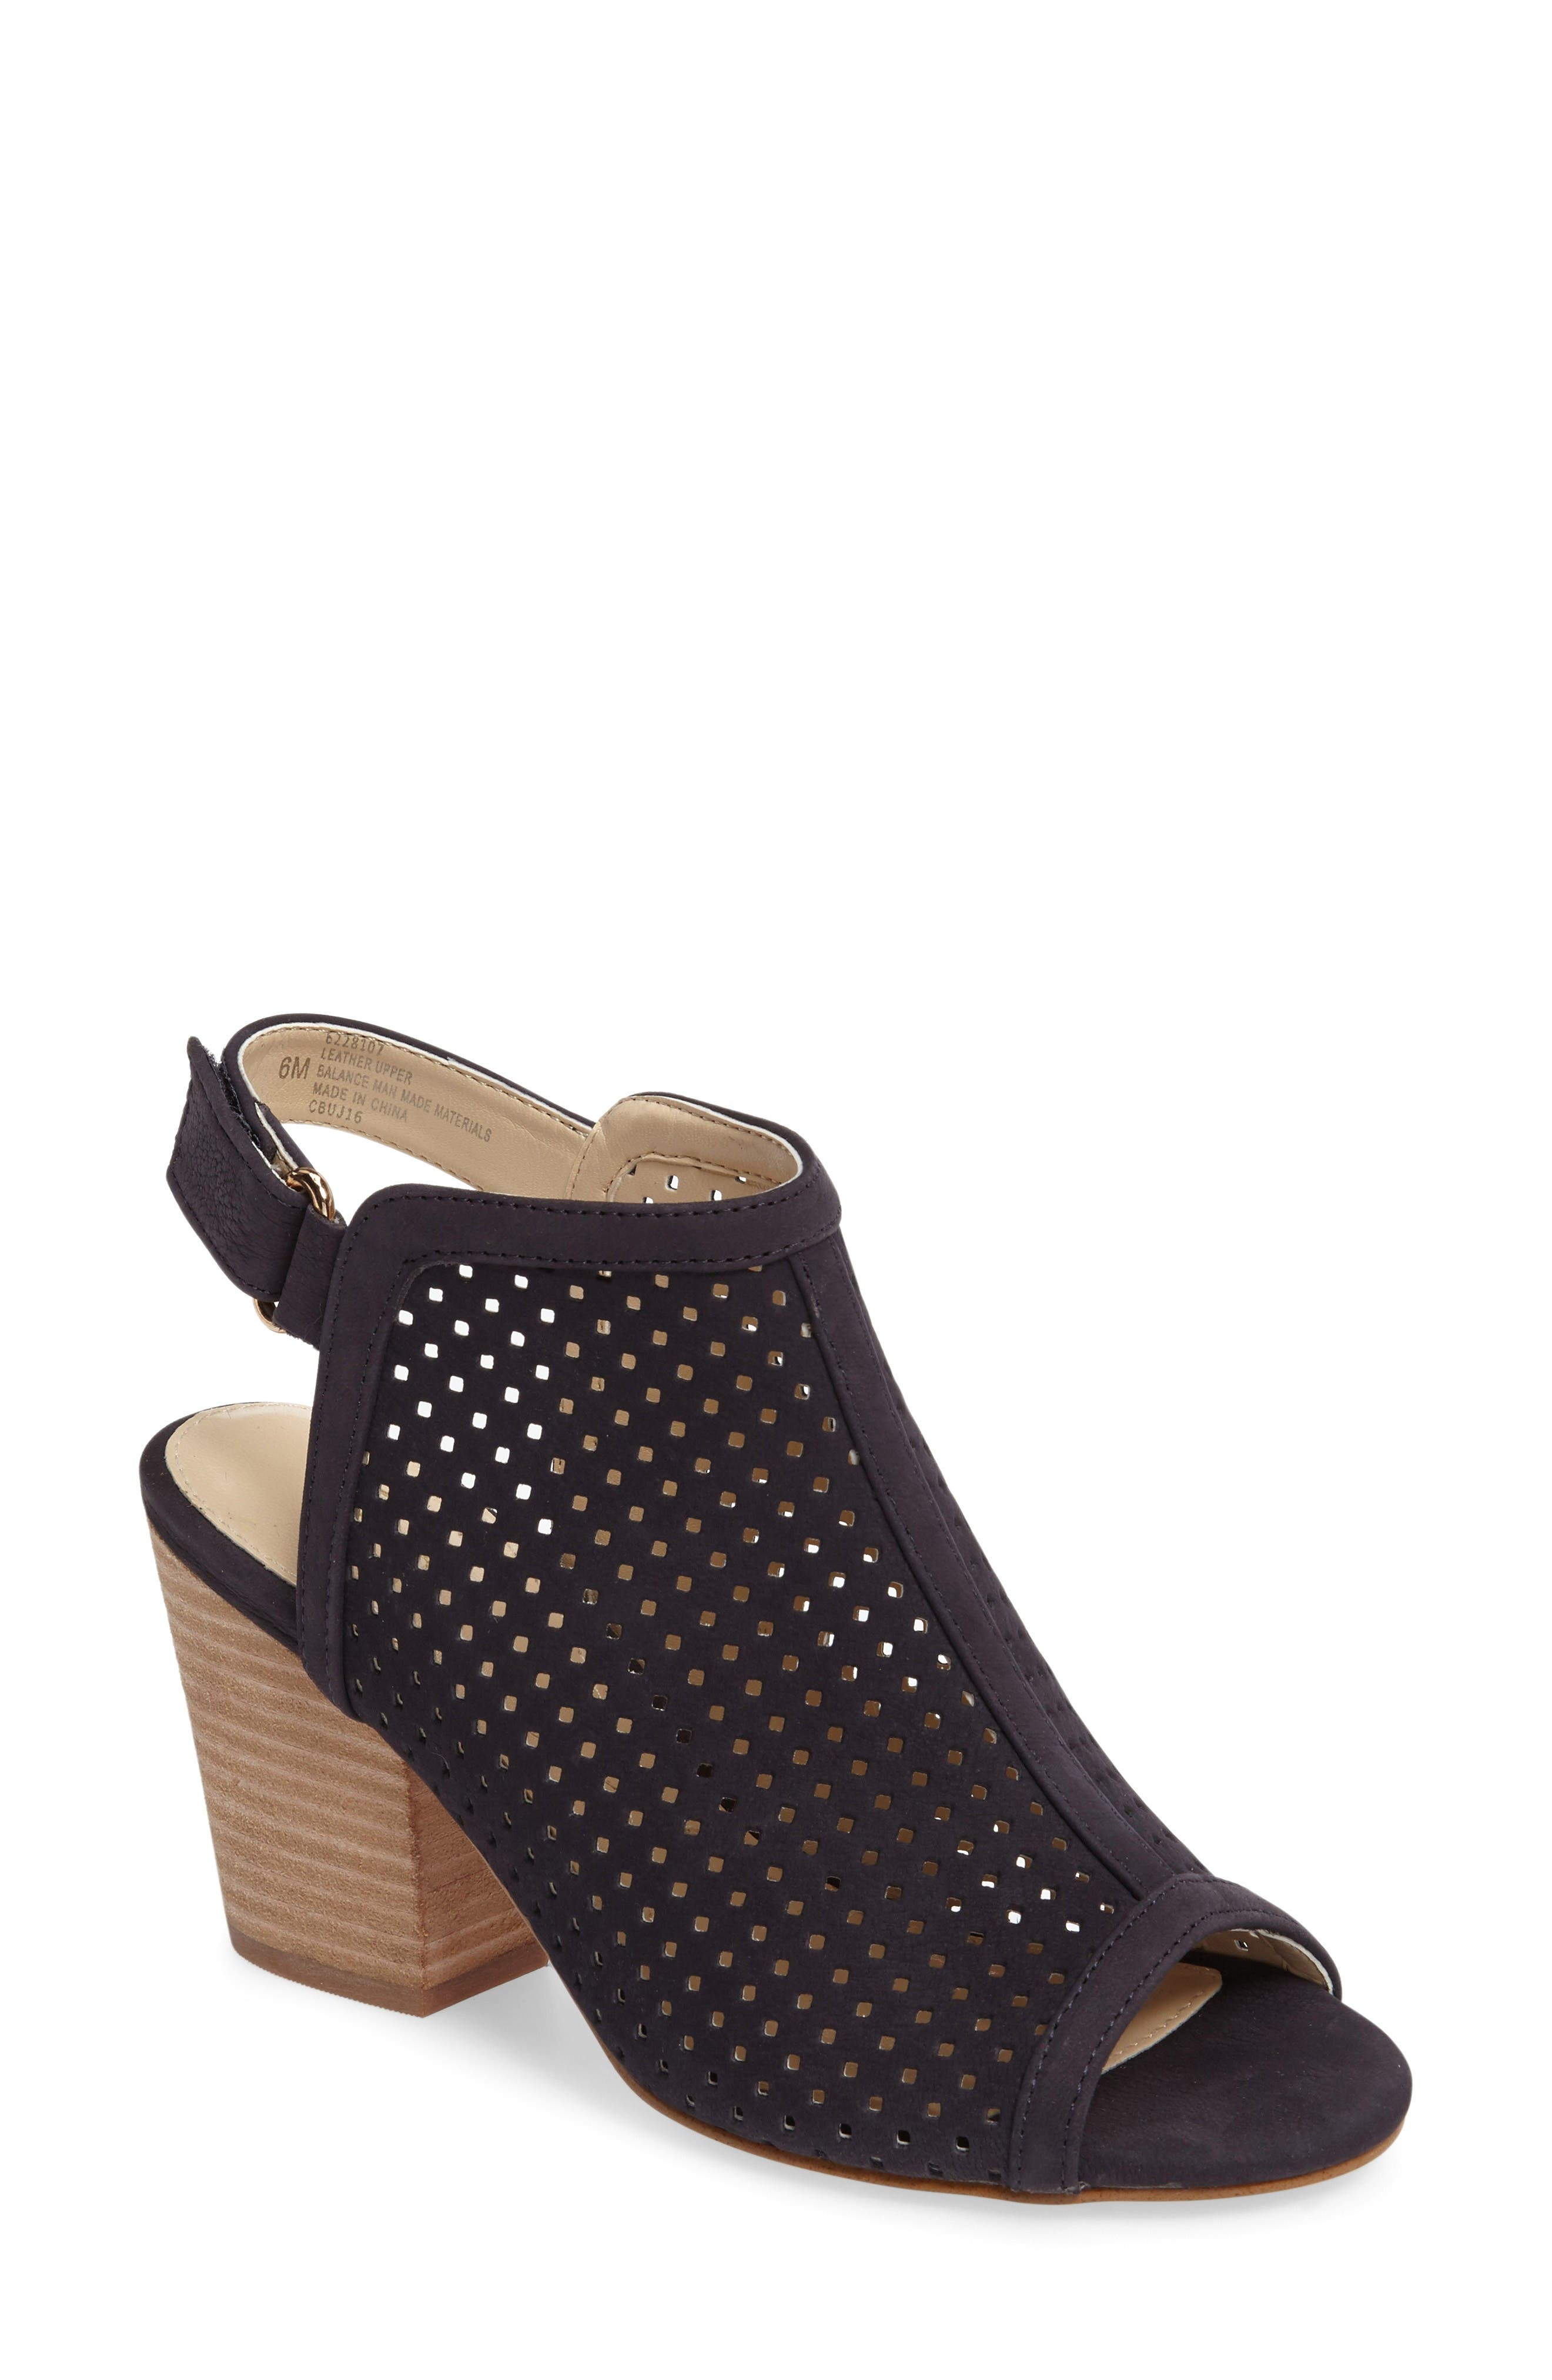 Alternate Image 1 Selected - Isolá 'Lora' Perforated Open-Toe Bootie Sandal (Women)